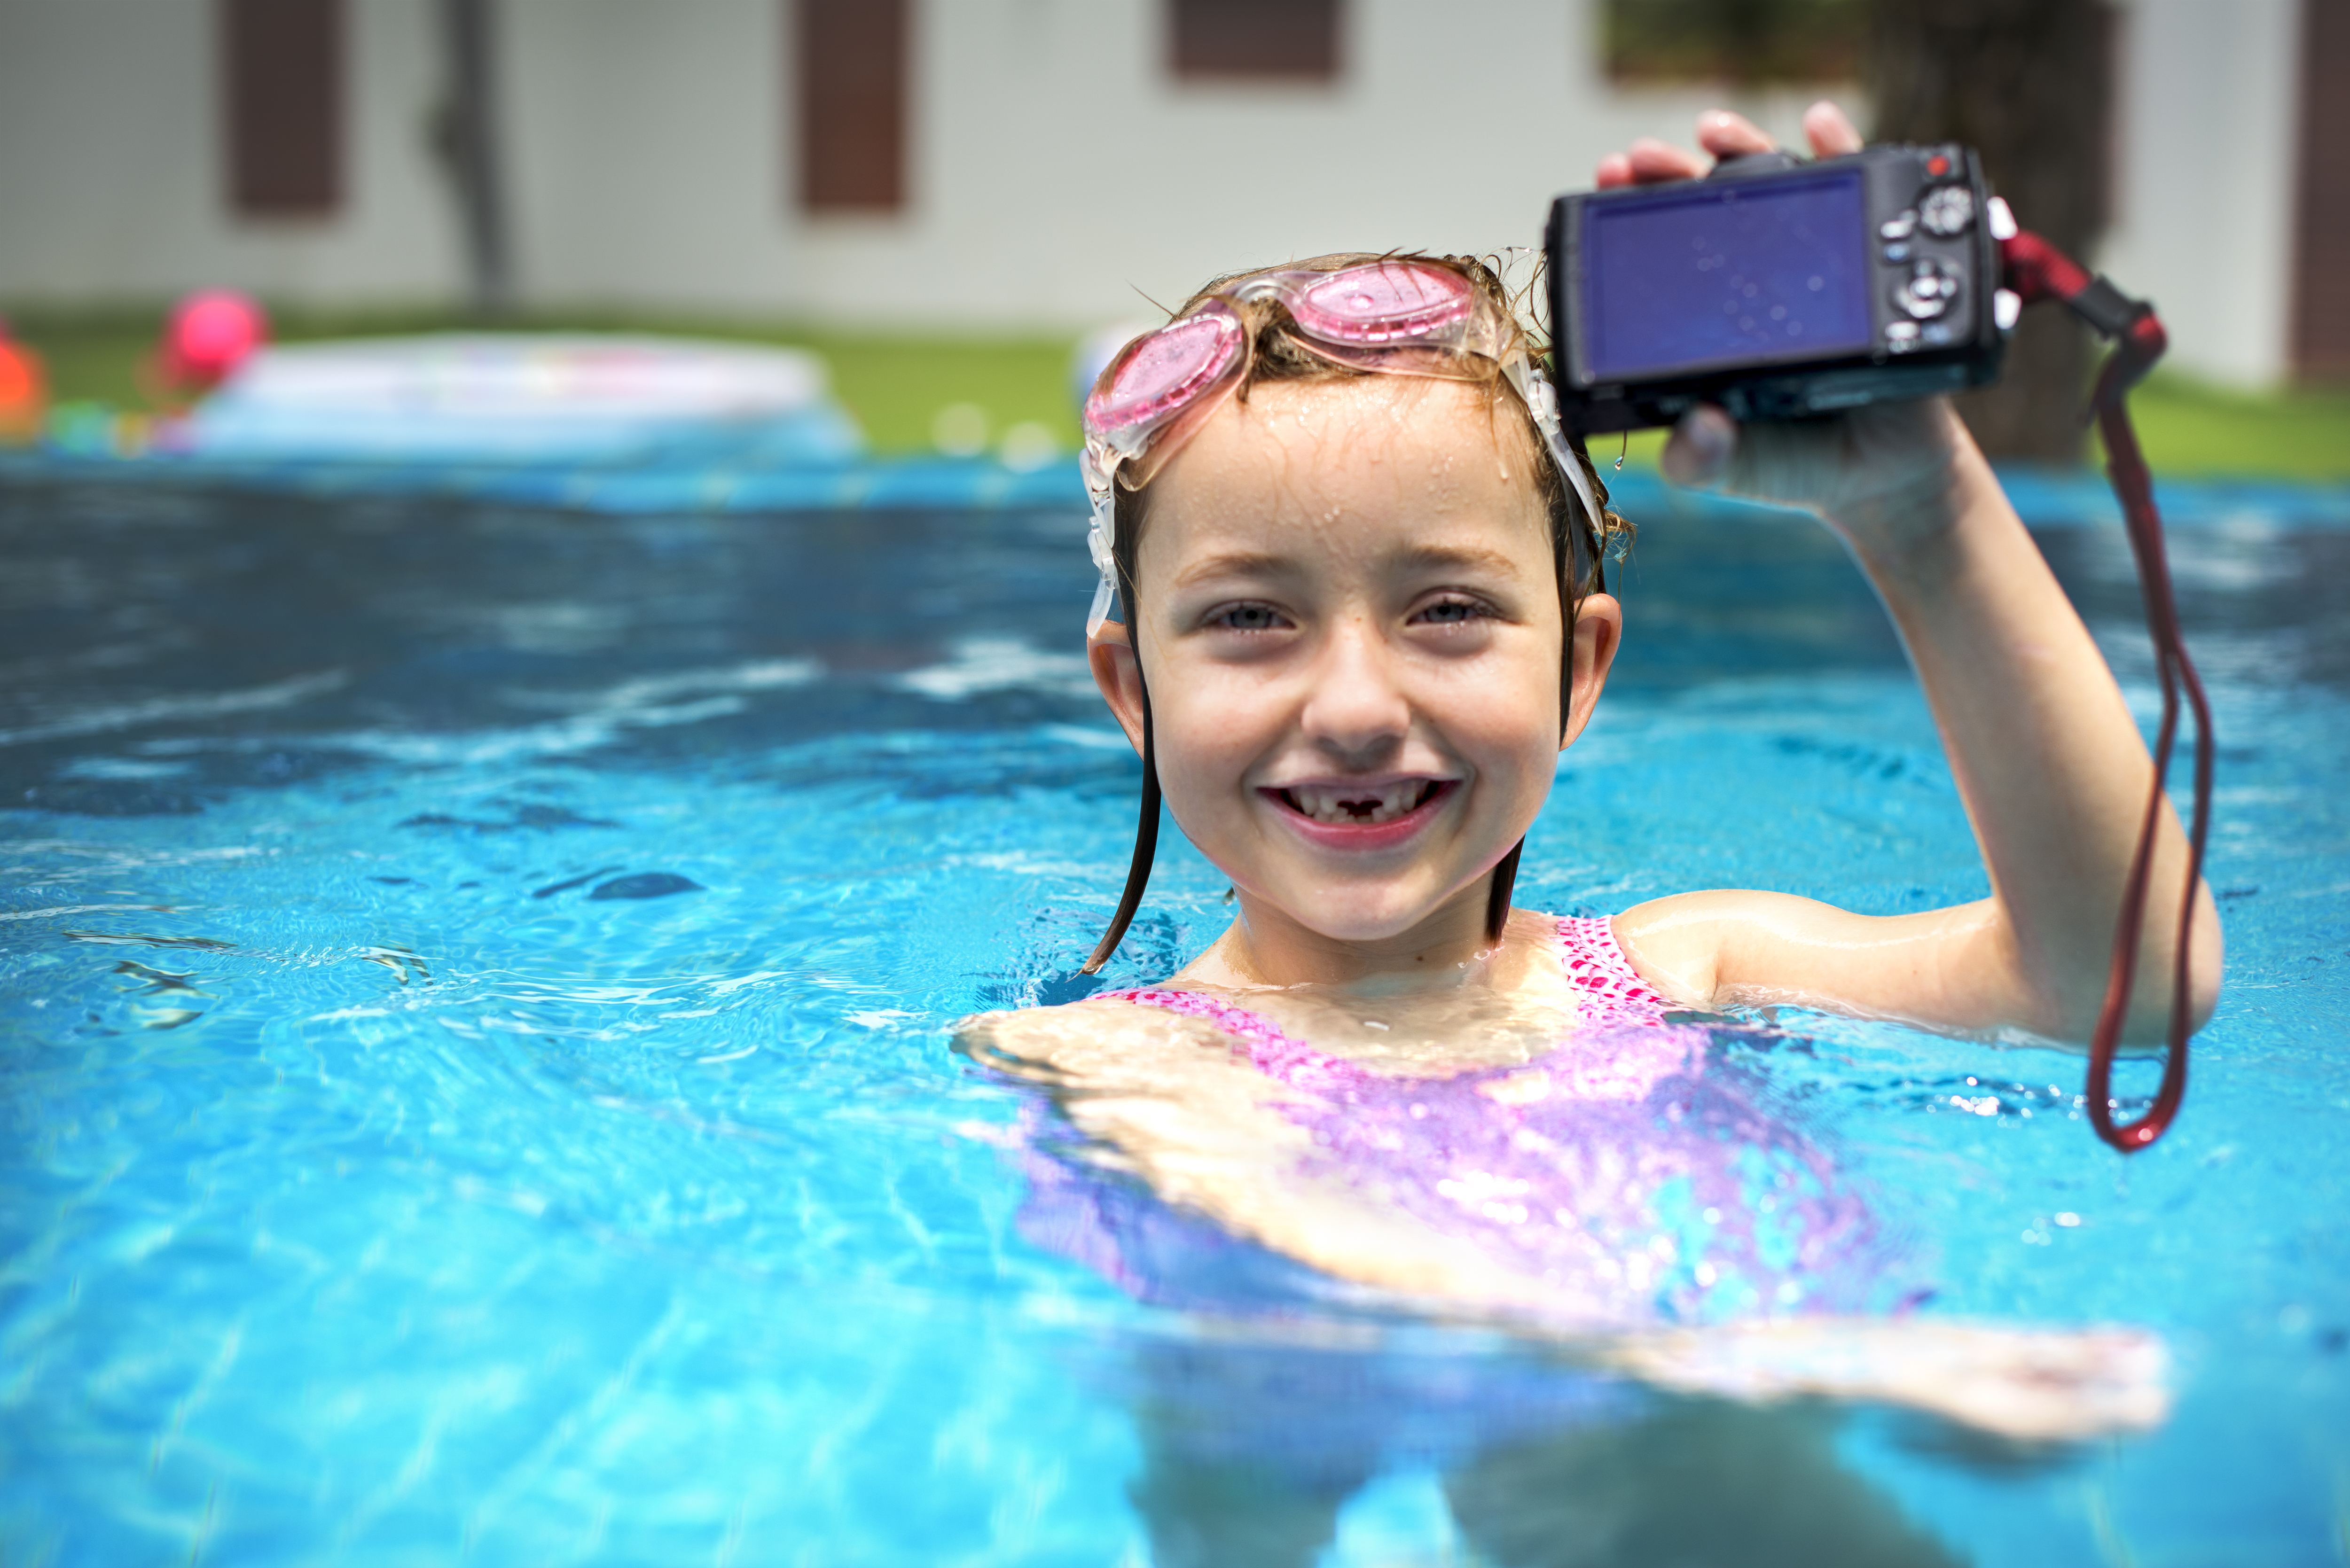 image1 The Benefits of Video Recording Your Child's Swim Lessons